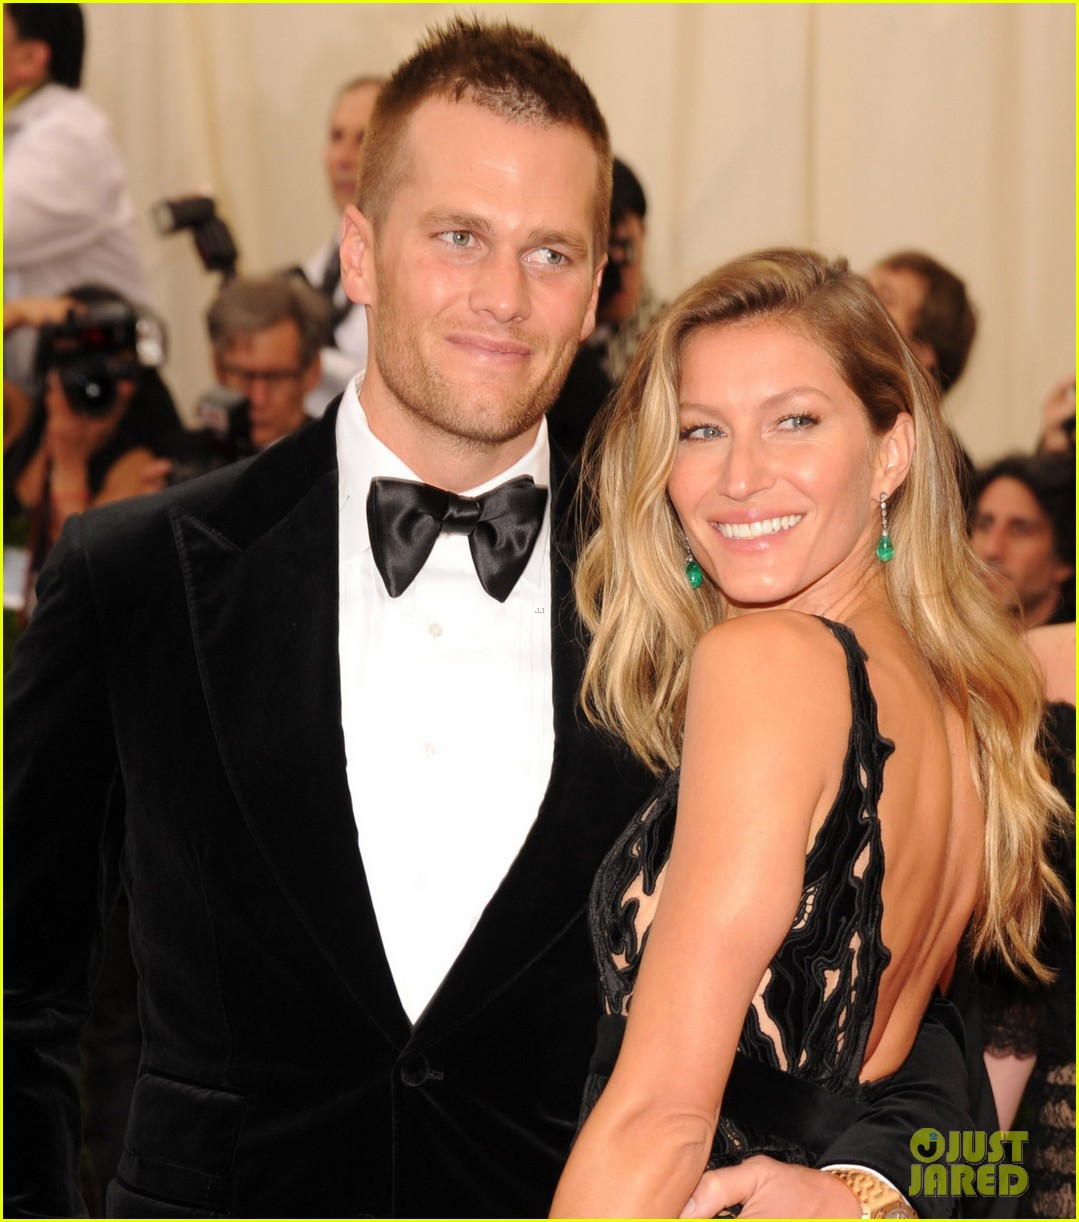 gisele bundchen tom brady are glowing couple at met ball 2014 053106102